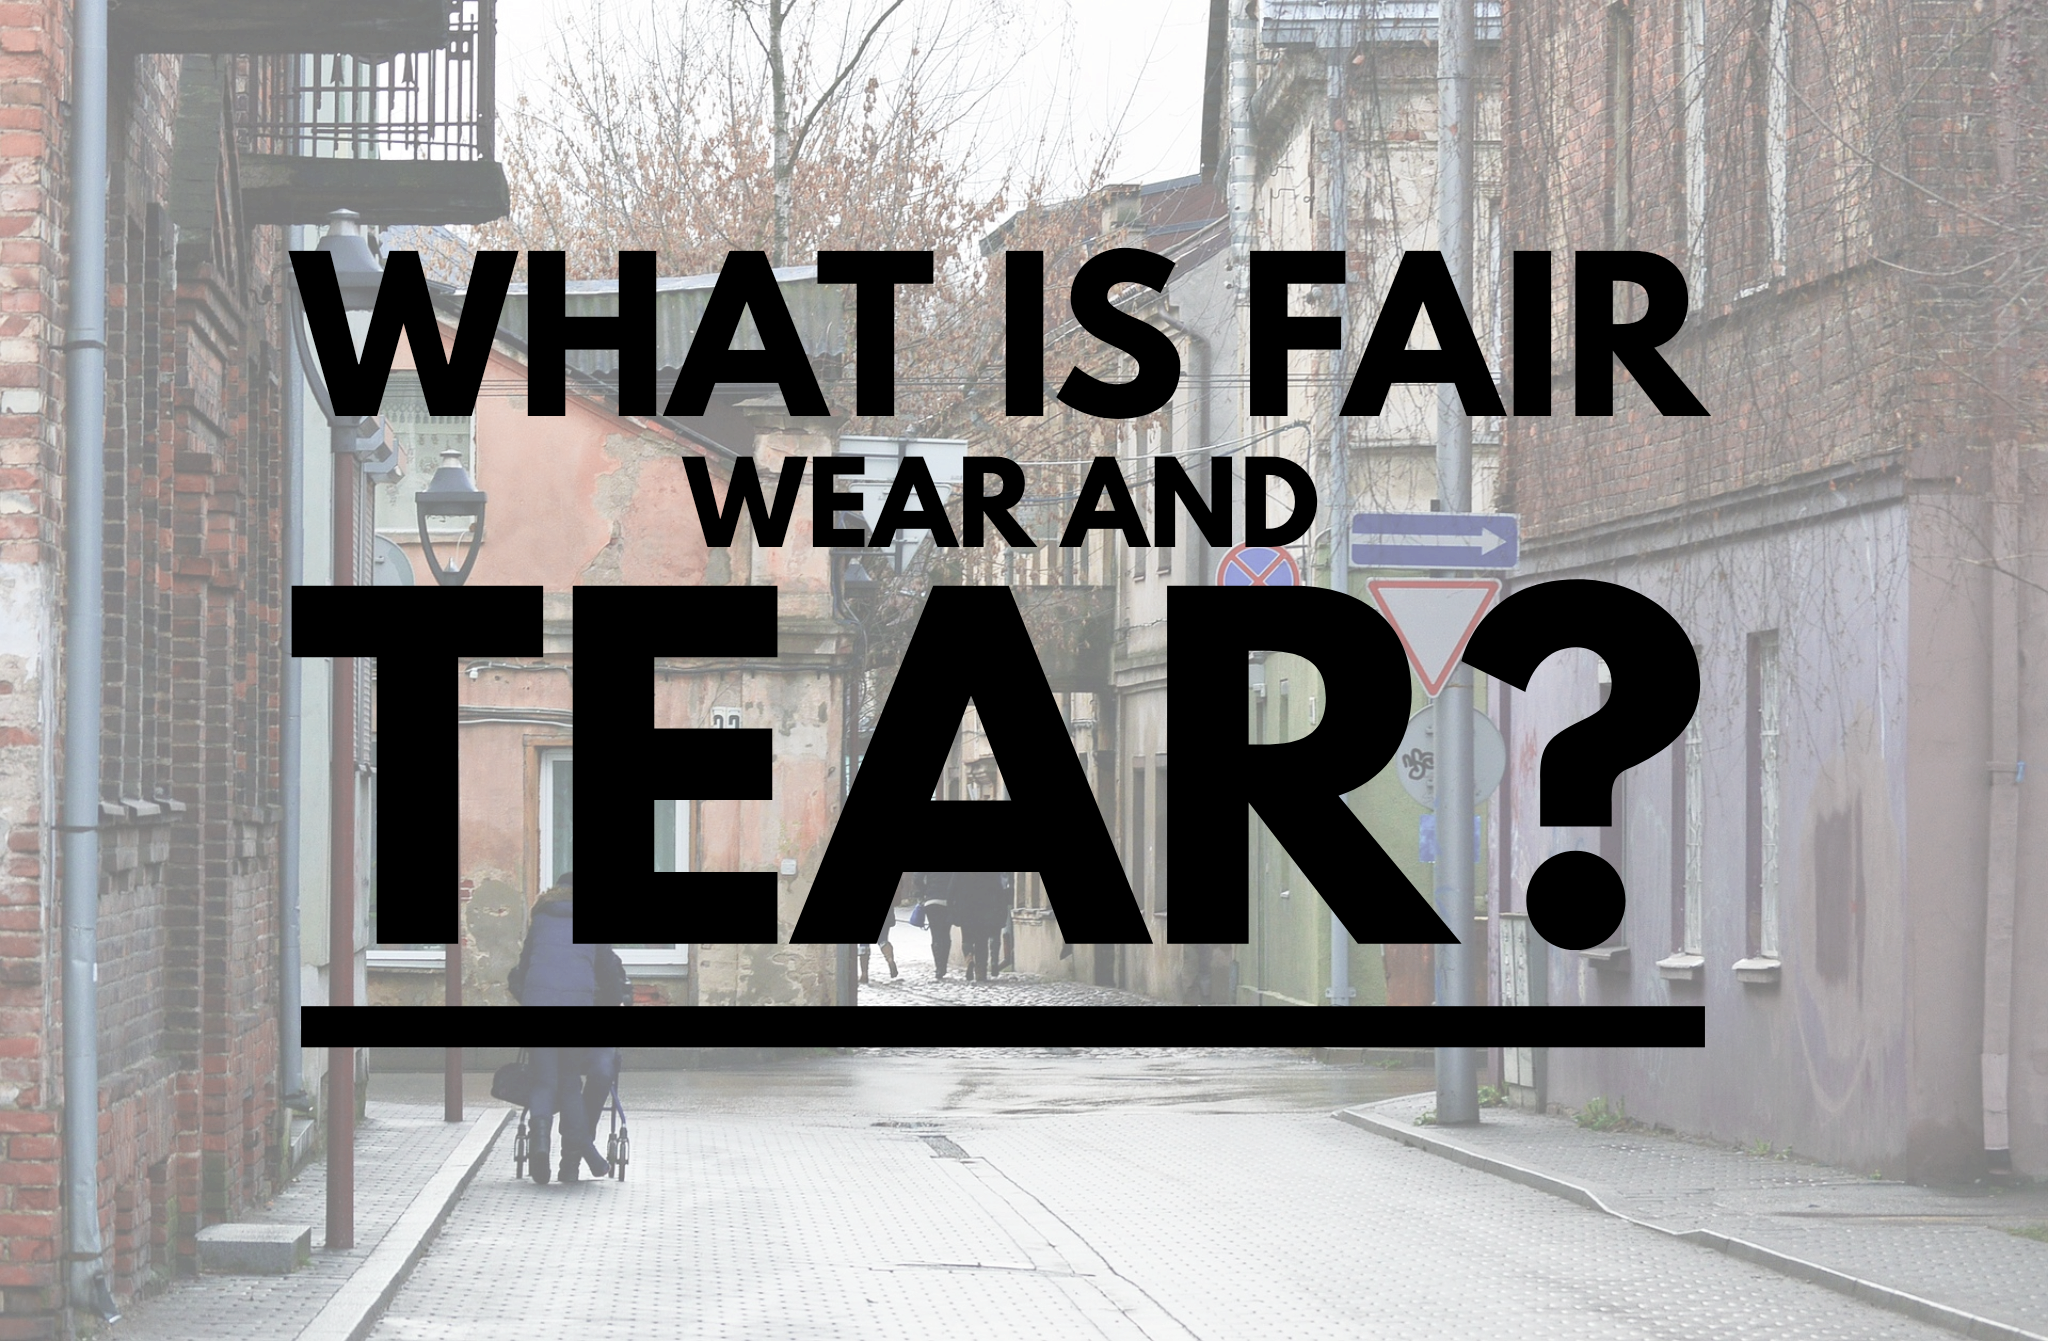 Fair wear and tear: Everything you need to know as a landlord